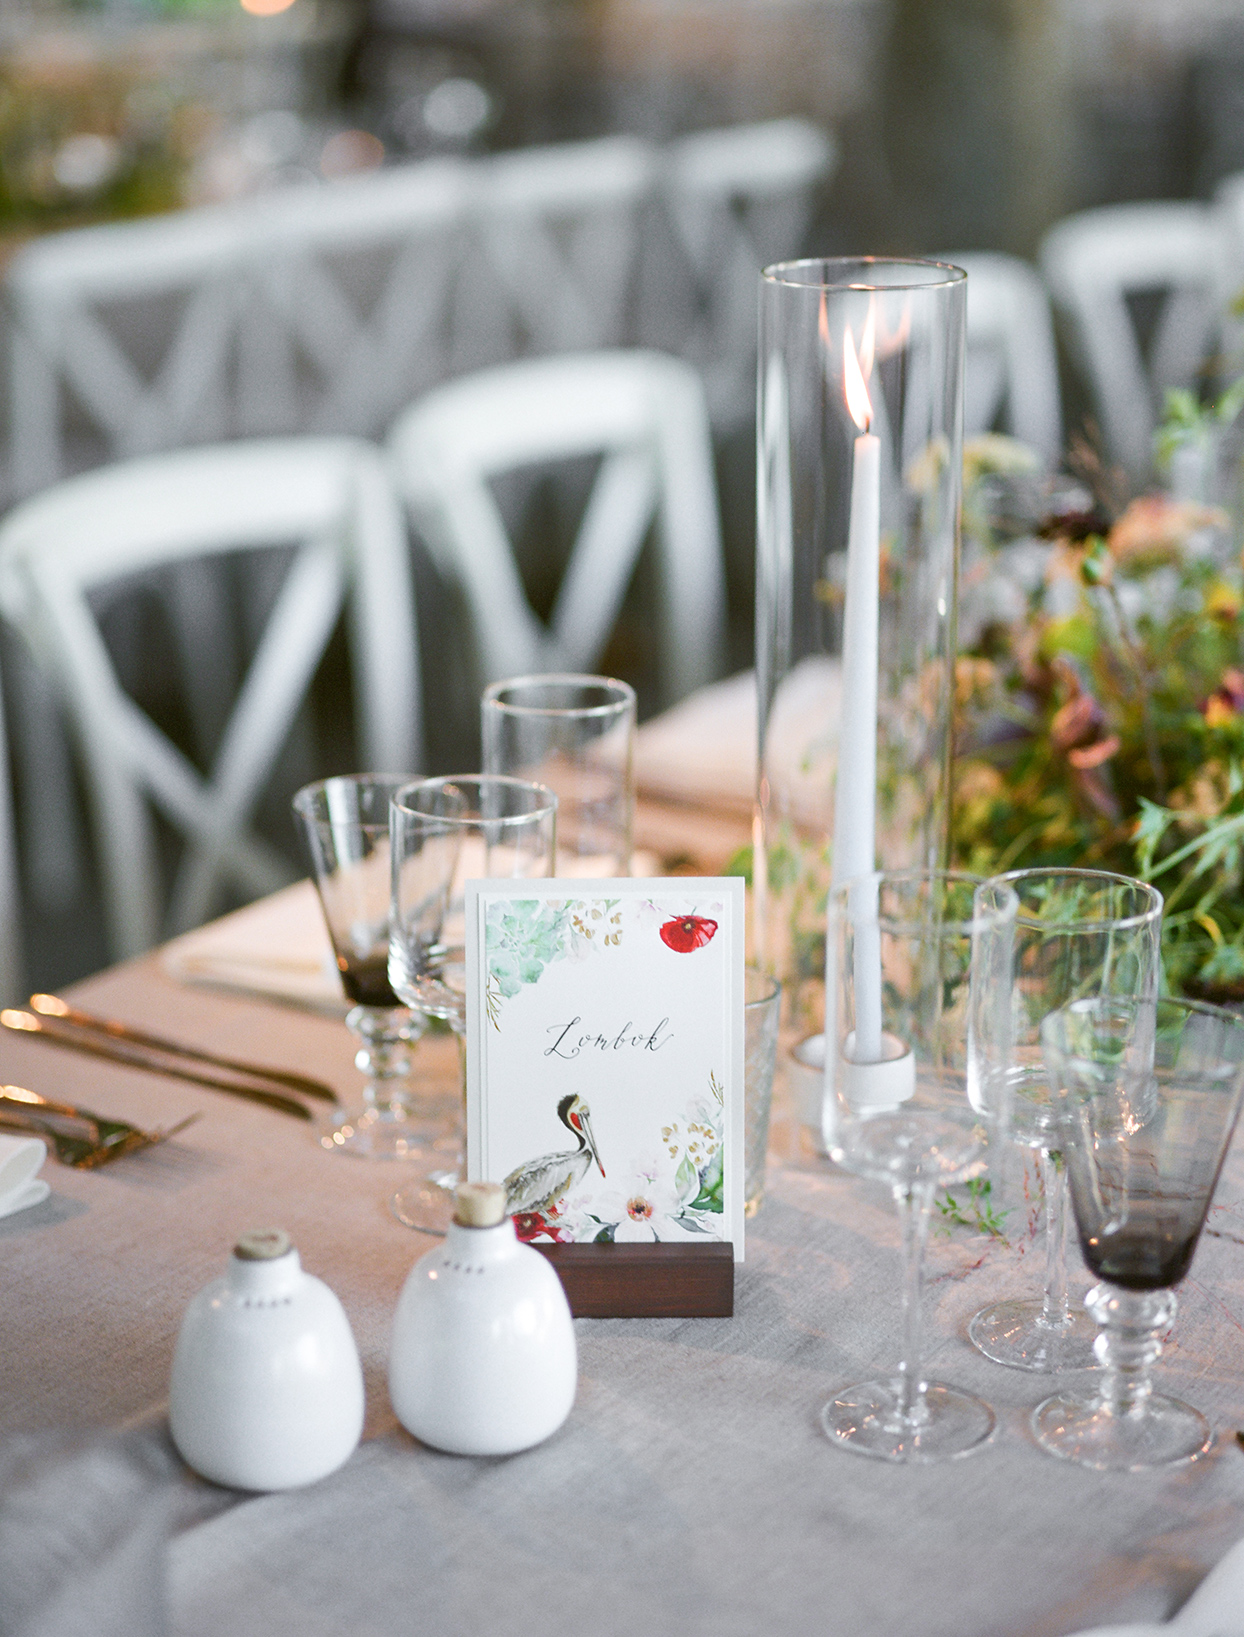 wedding reception table setting with bird themed table number